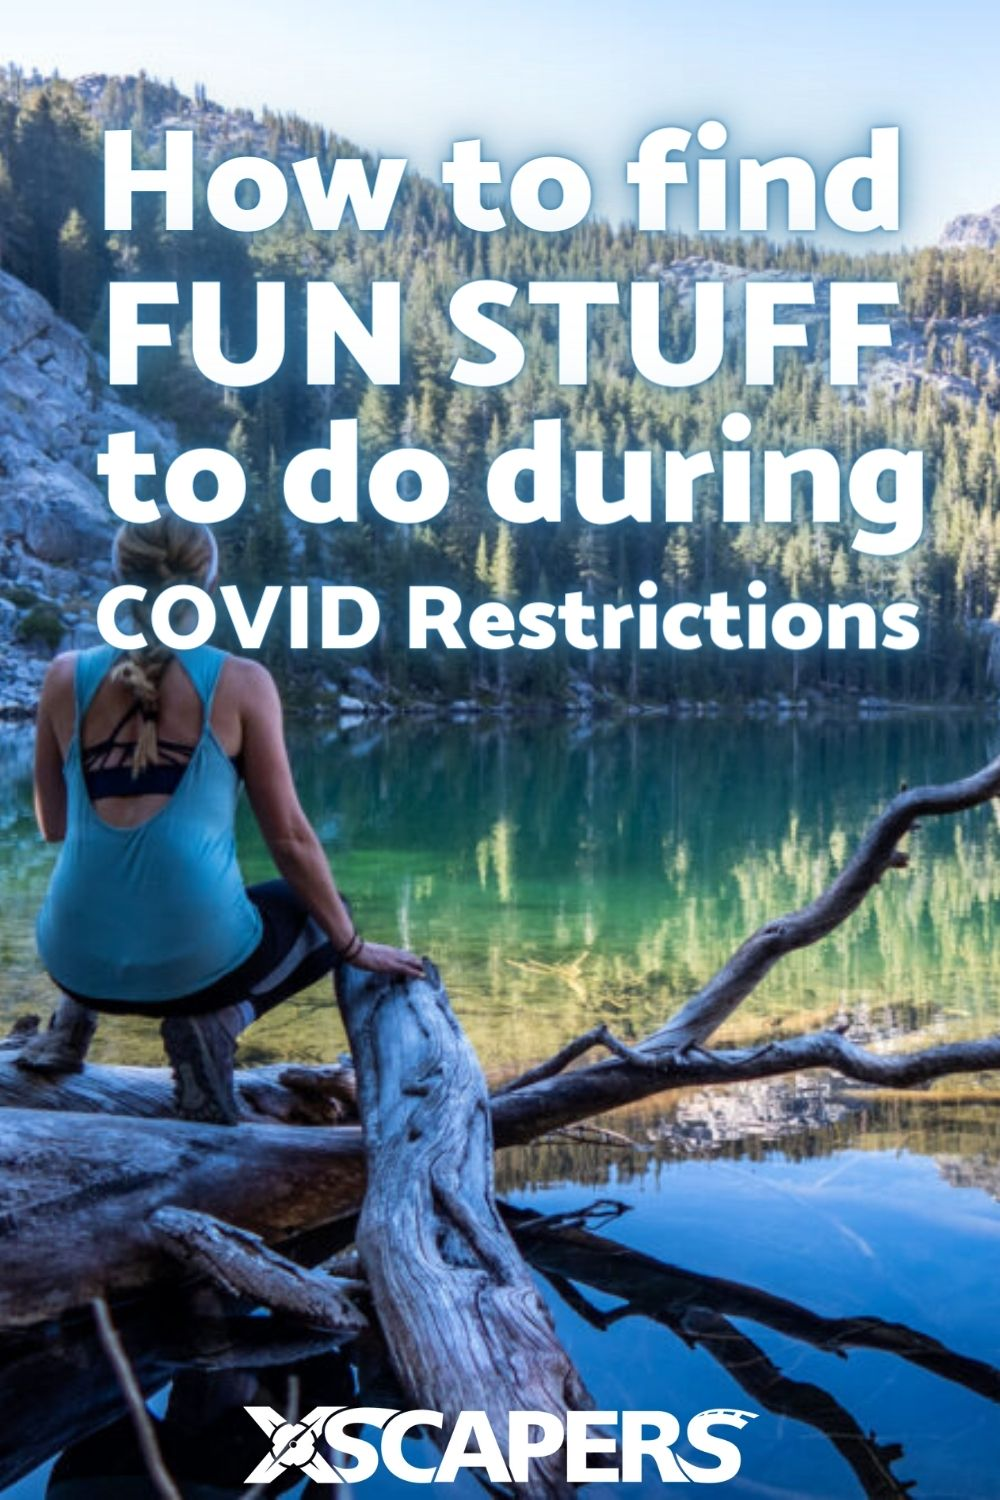 Finding Fun Things To Do During COVID-Related Restrictions 27